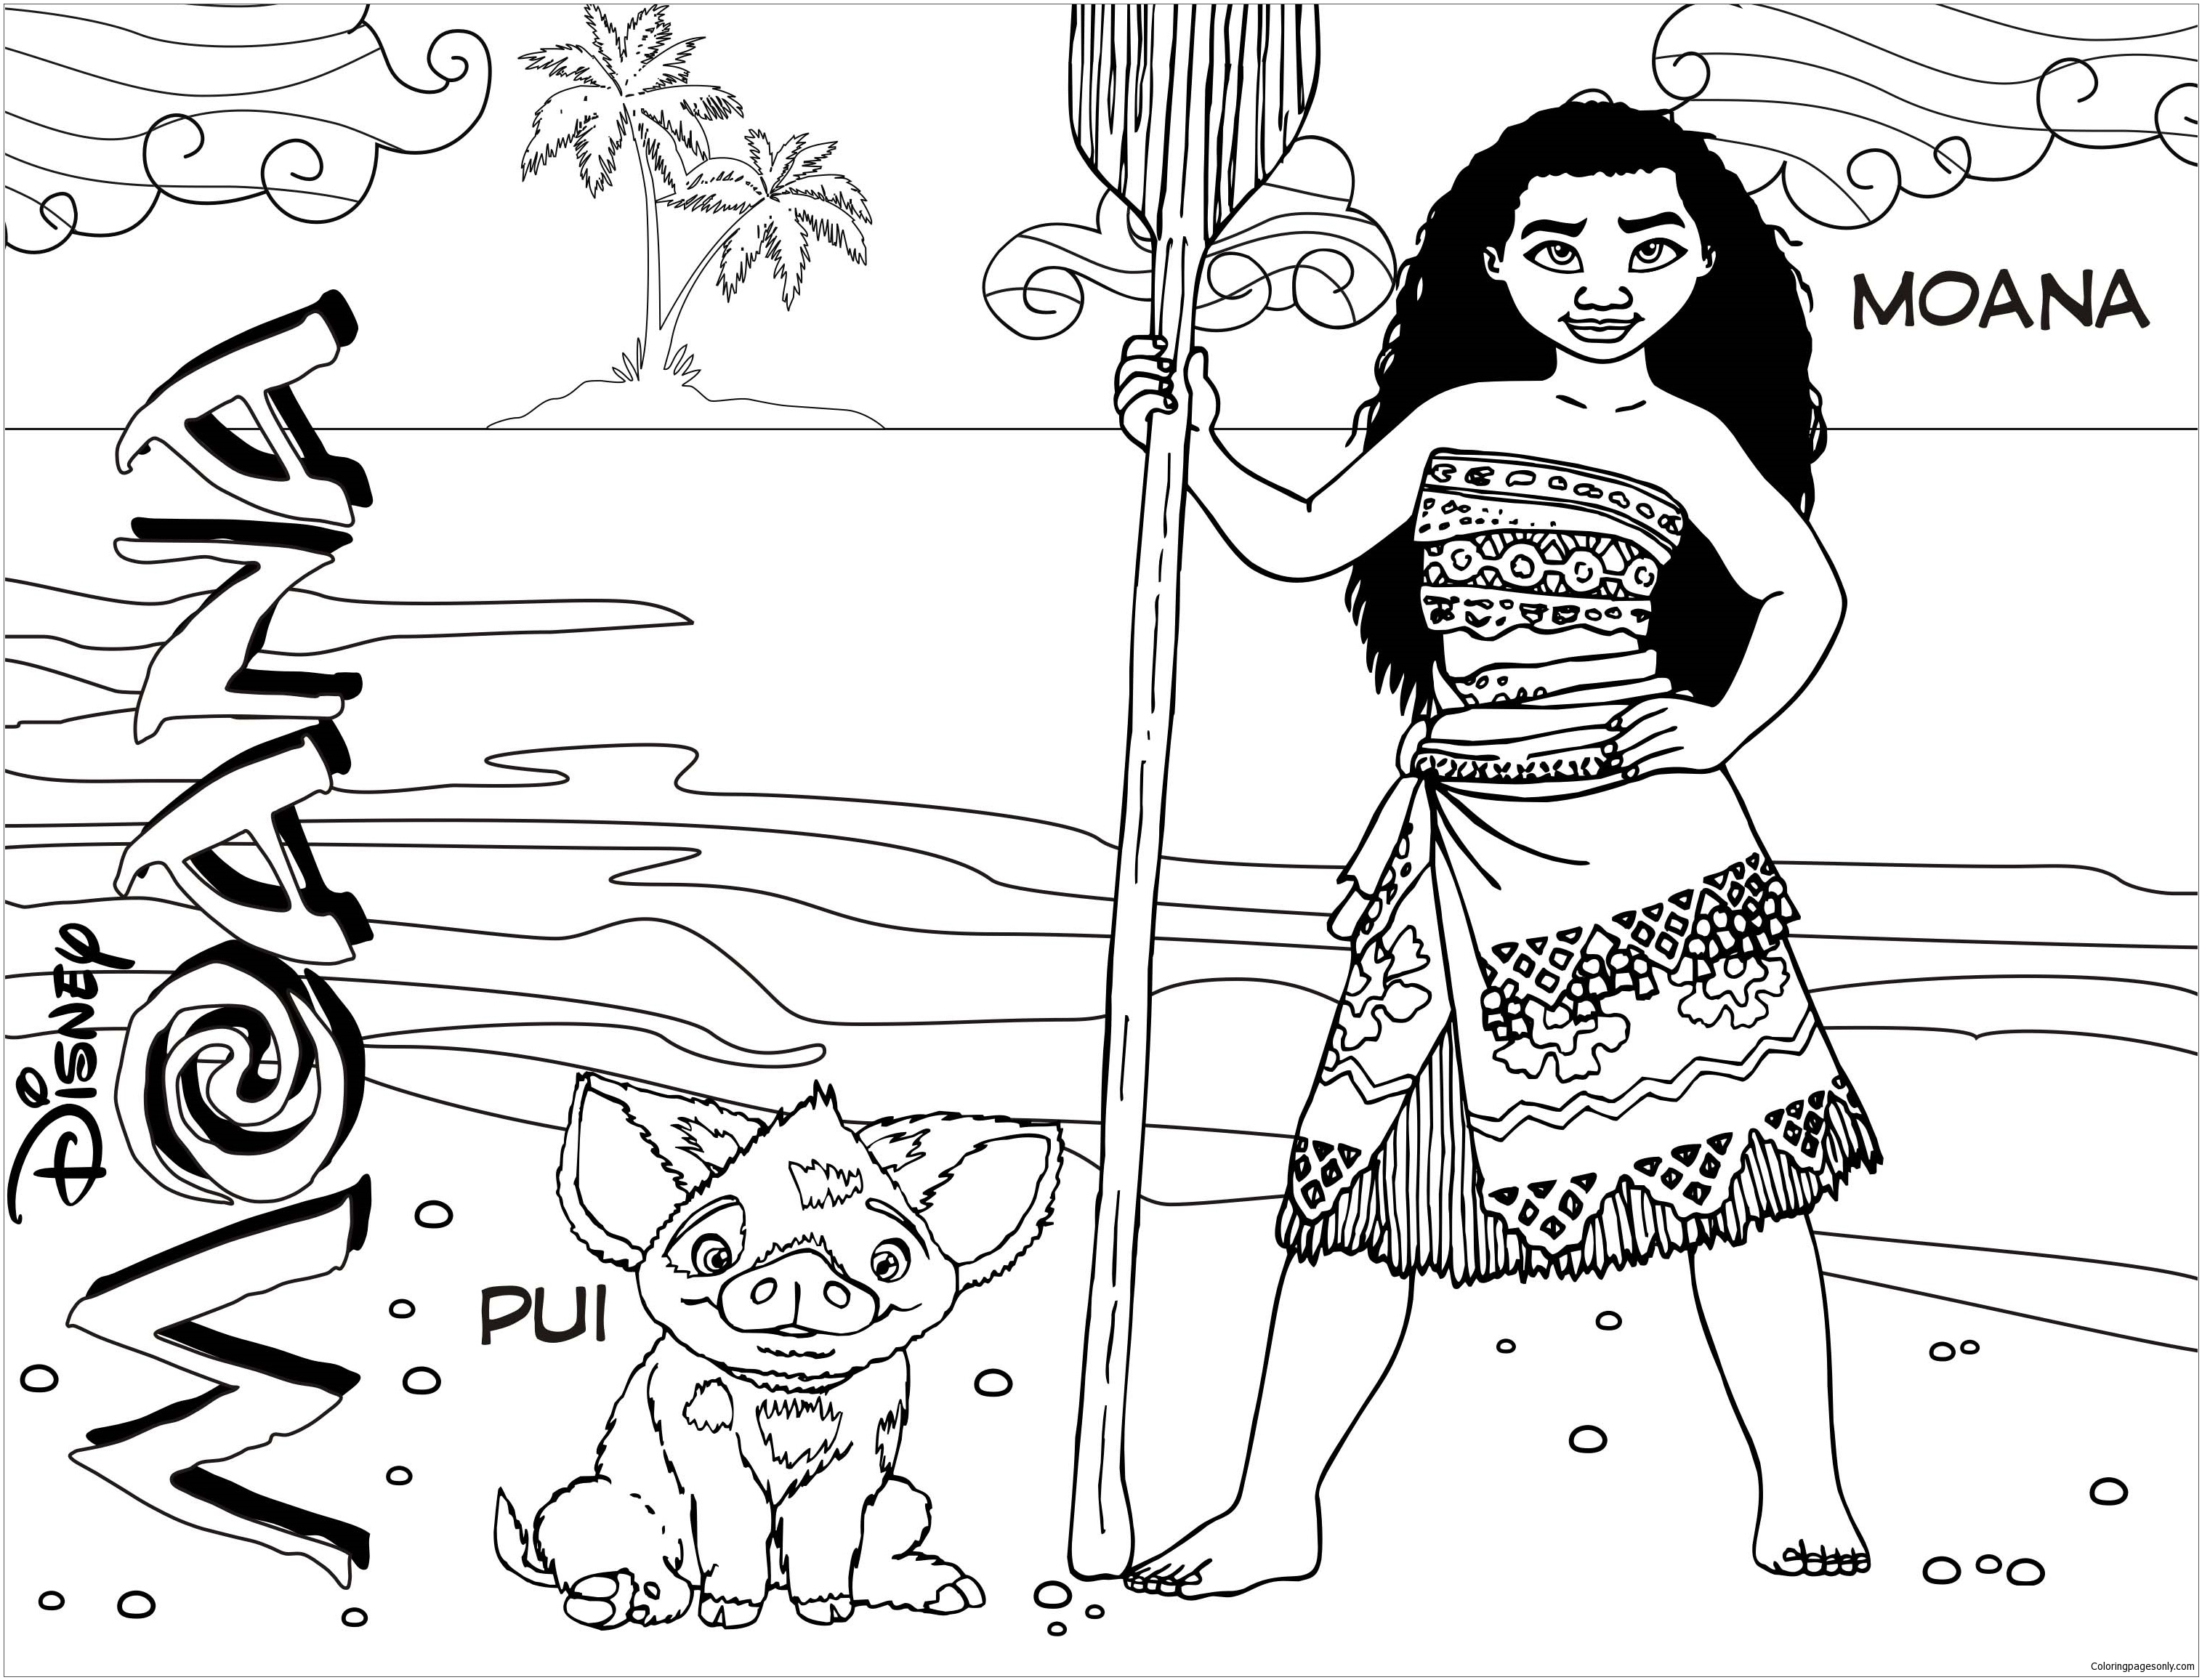 Moana And Pua 2 Coloring Page